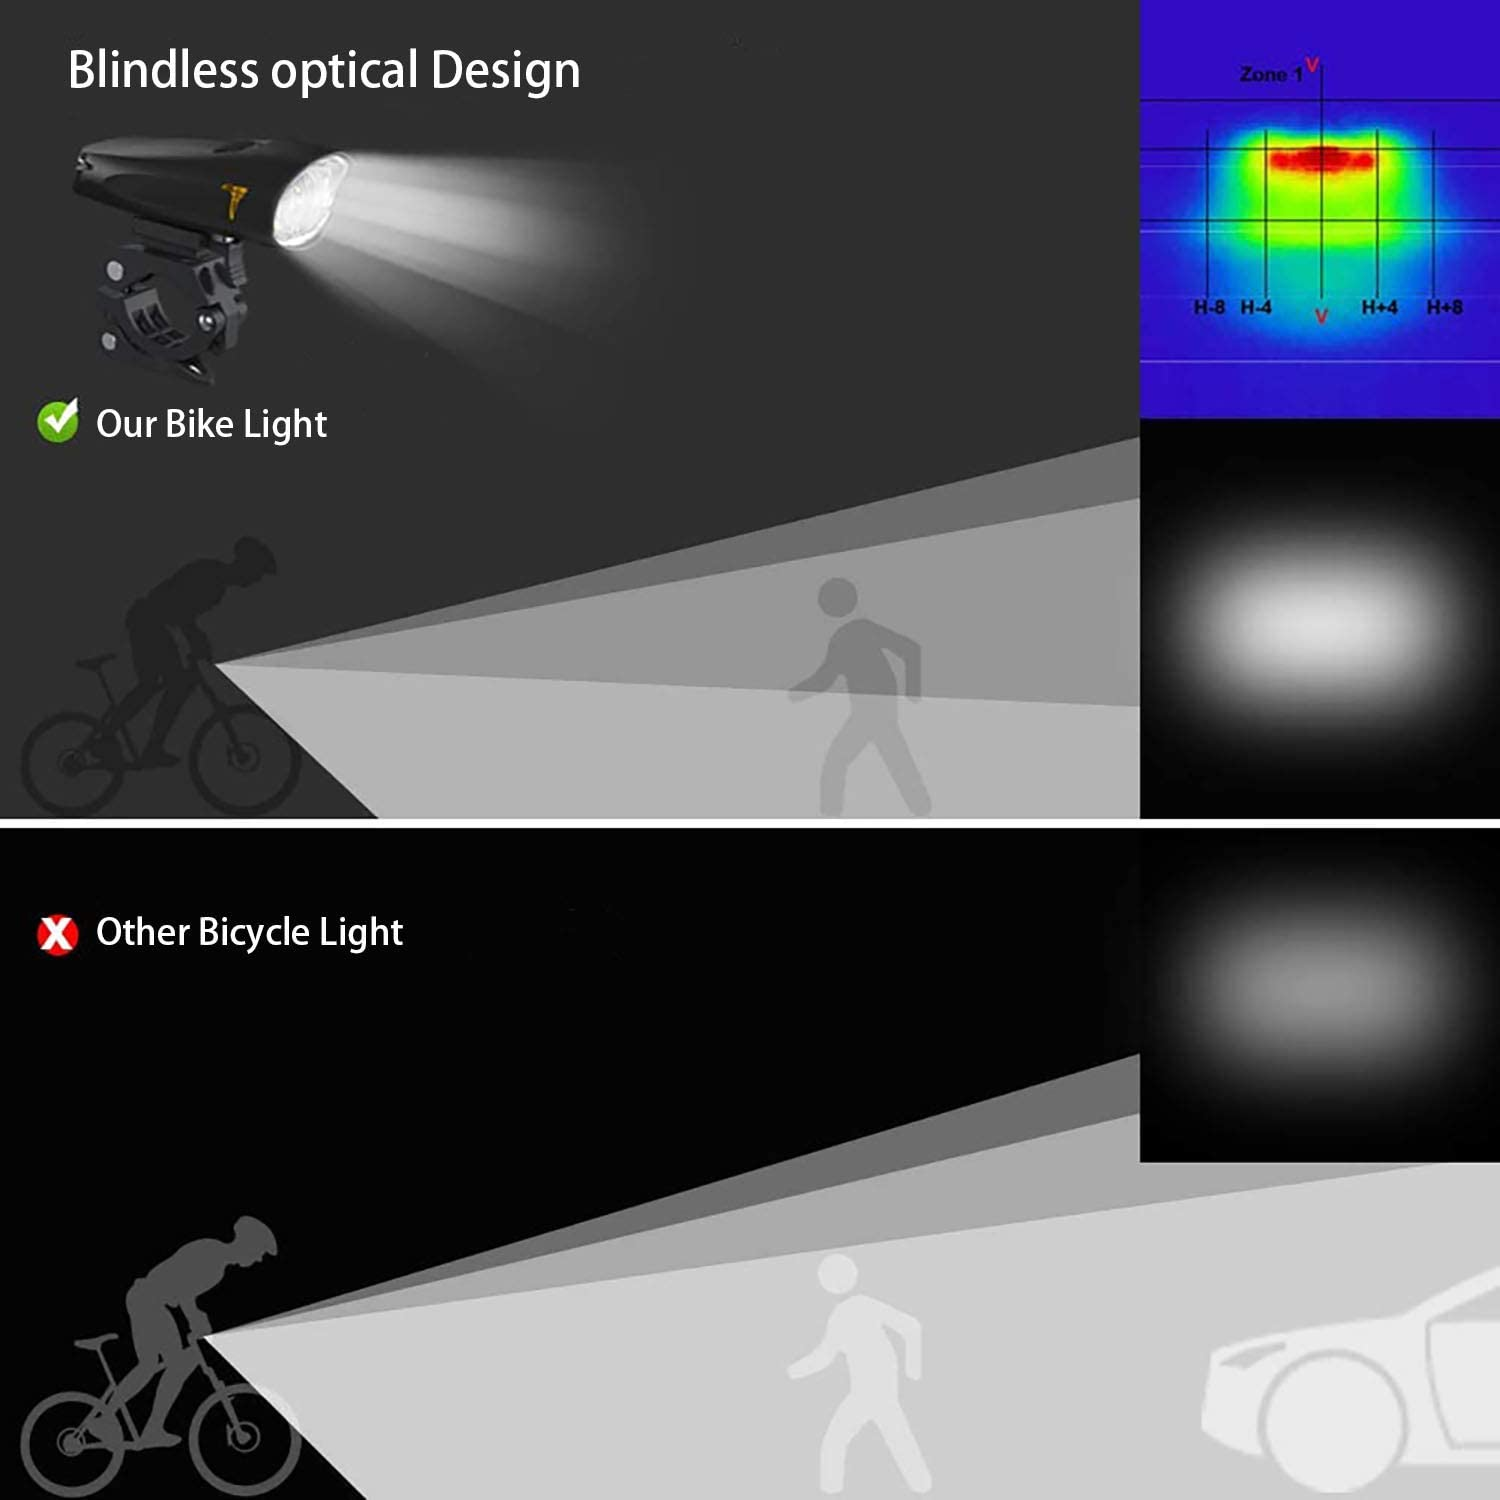 VISION DL 500 Lumen Led Bicycle Light,USB Rechargeable Bicycle Headlight.Bike Light Front has 2 Light Modes.